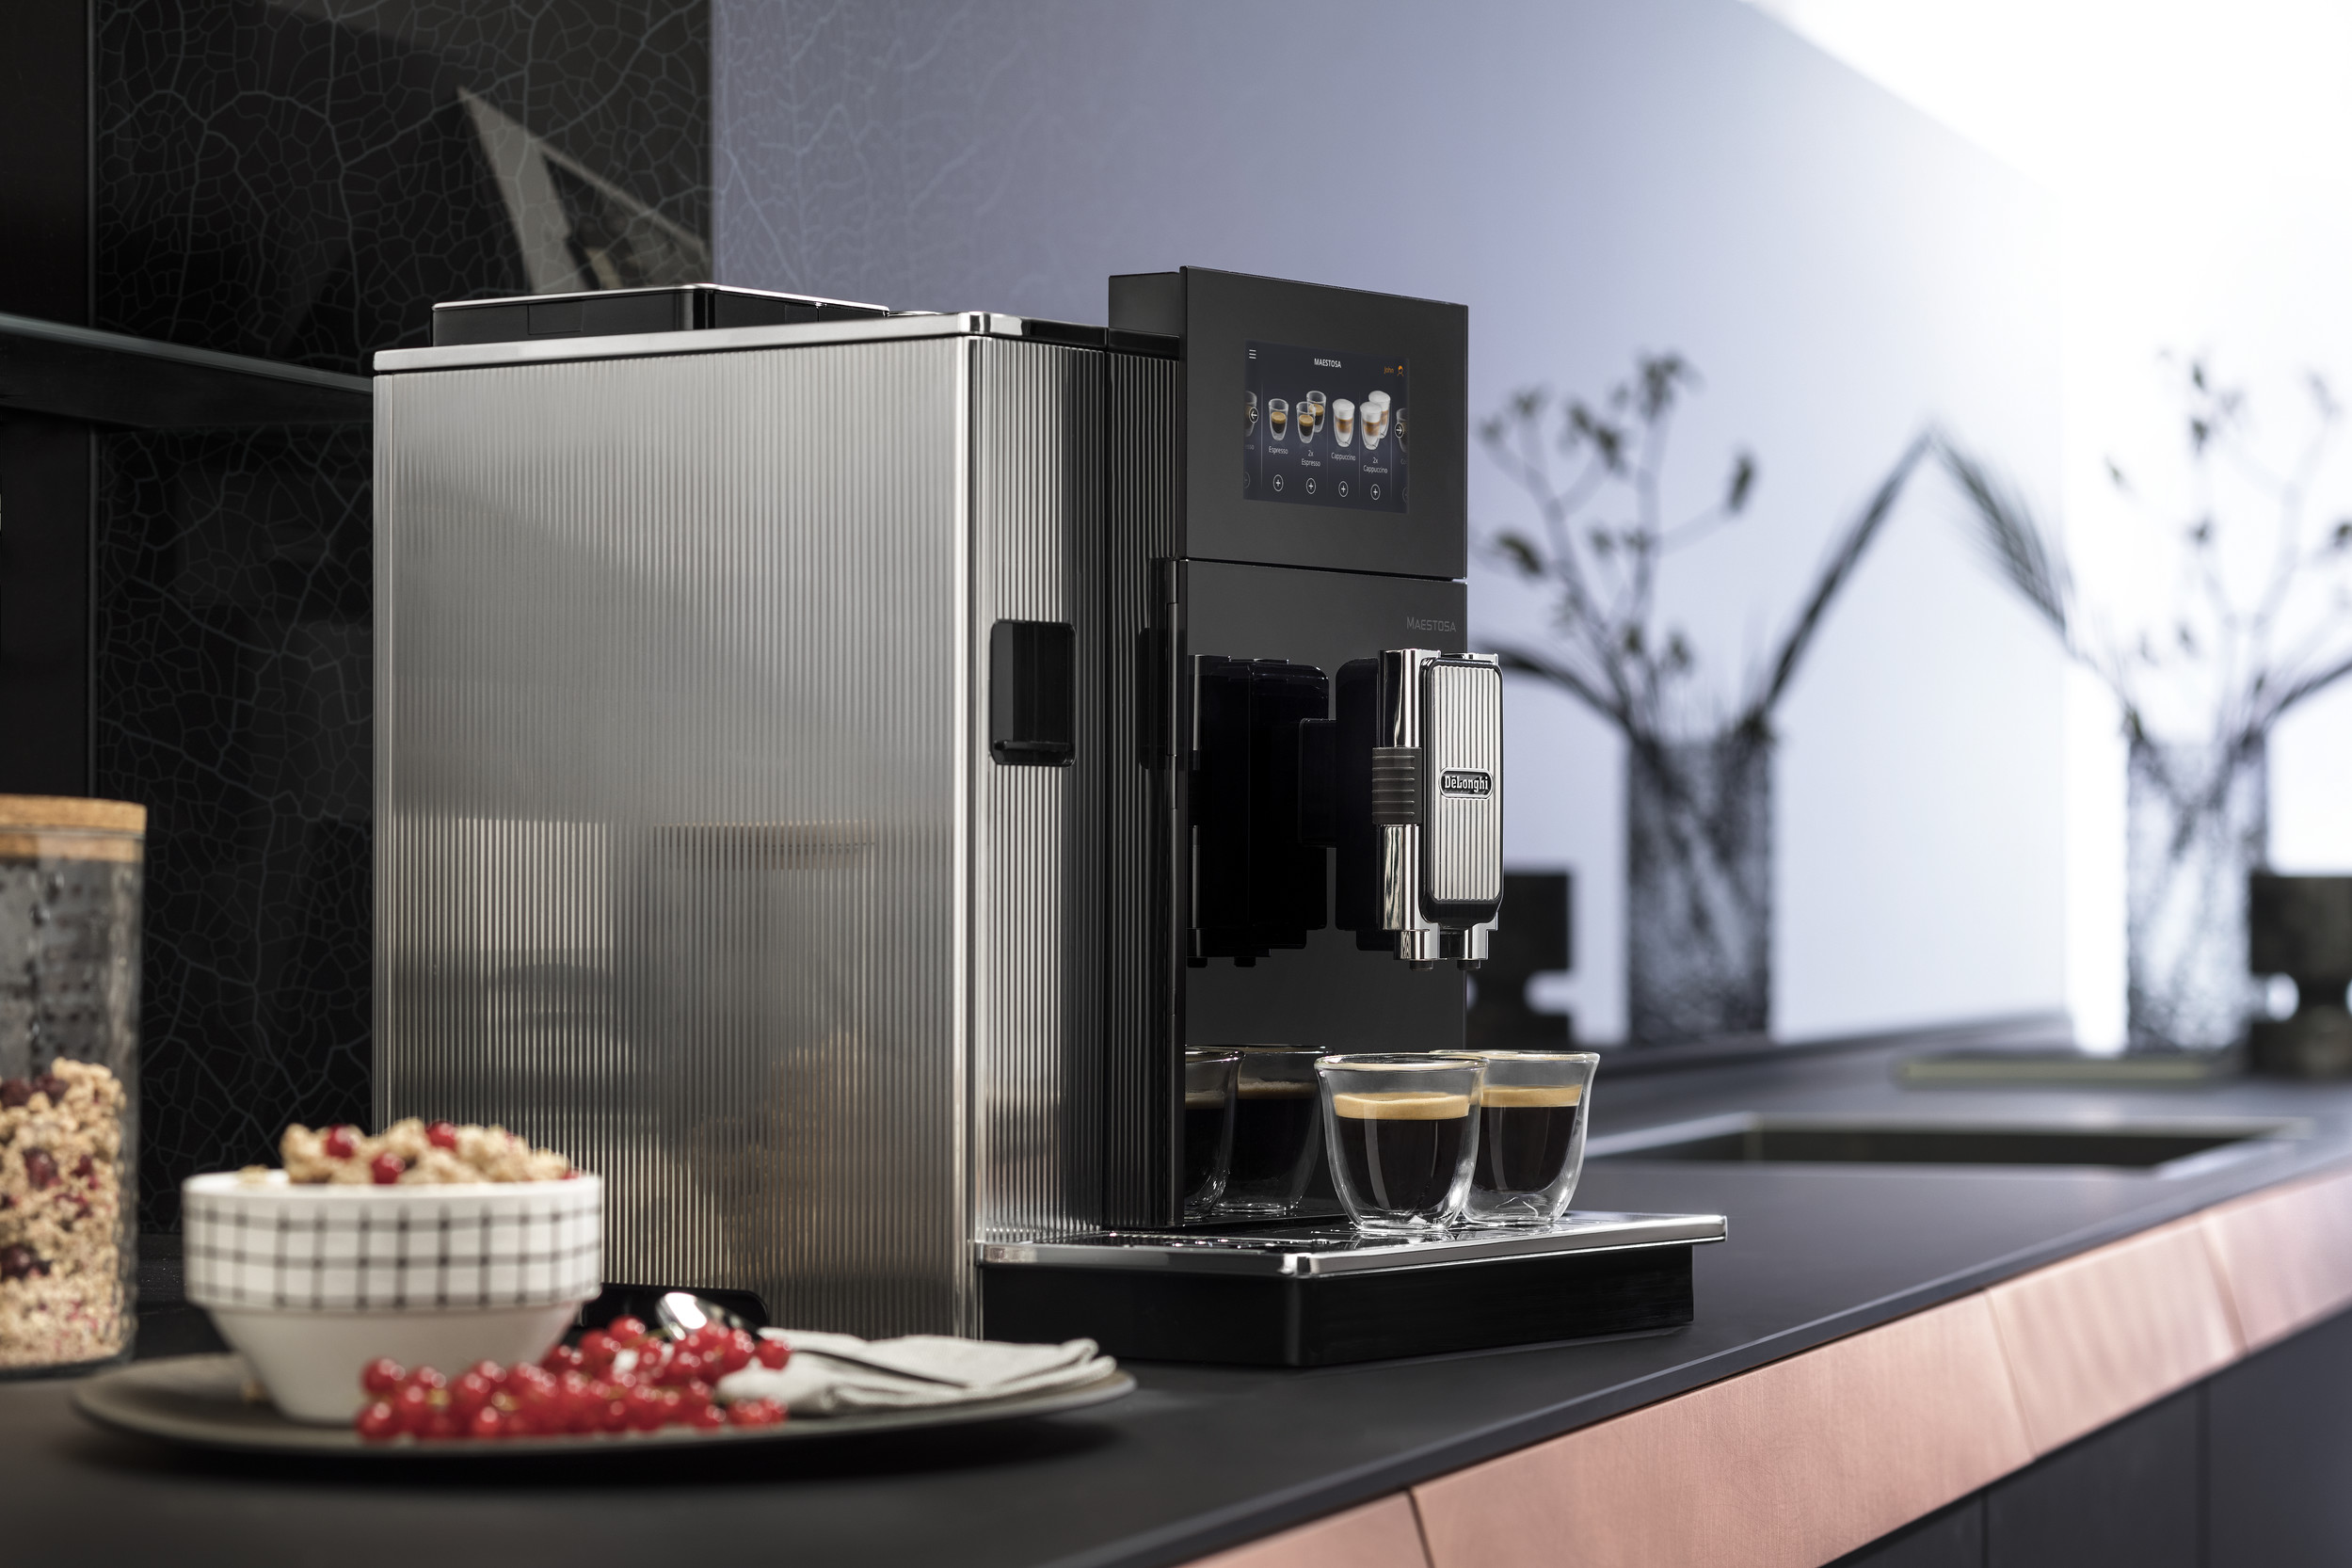 The De'Longhi Maestosa Coffee machine on the table